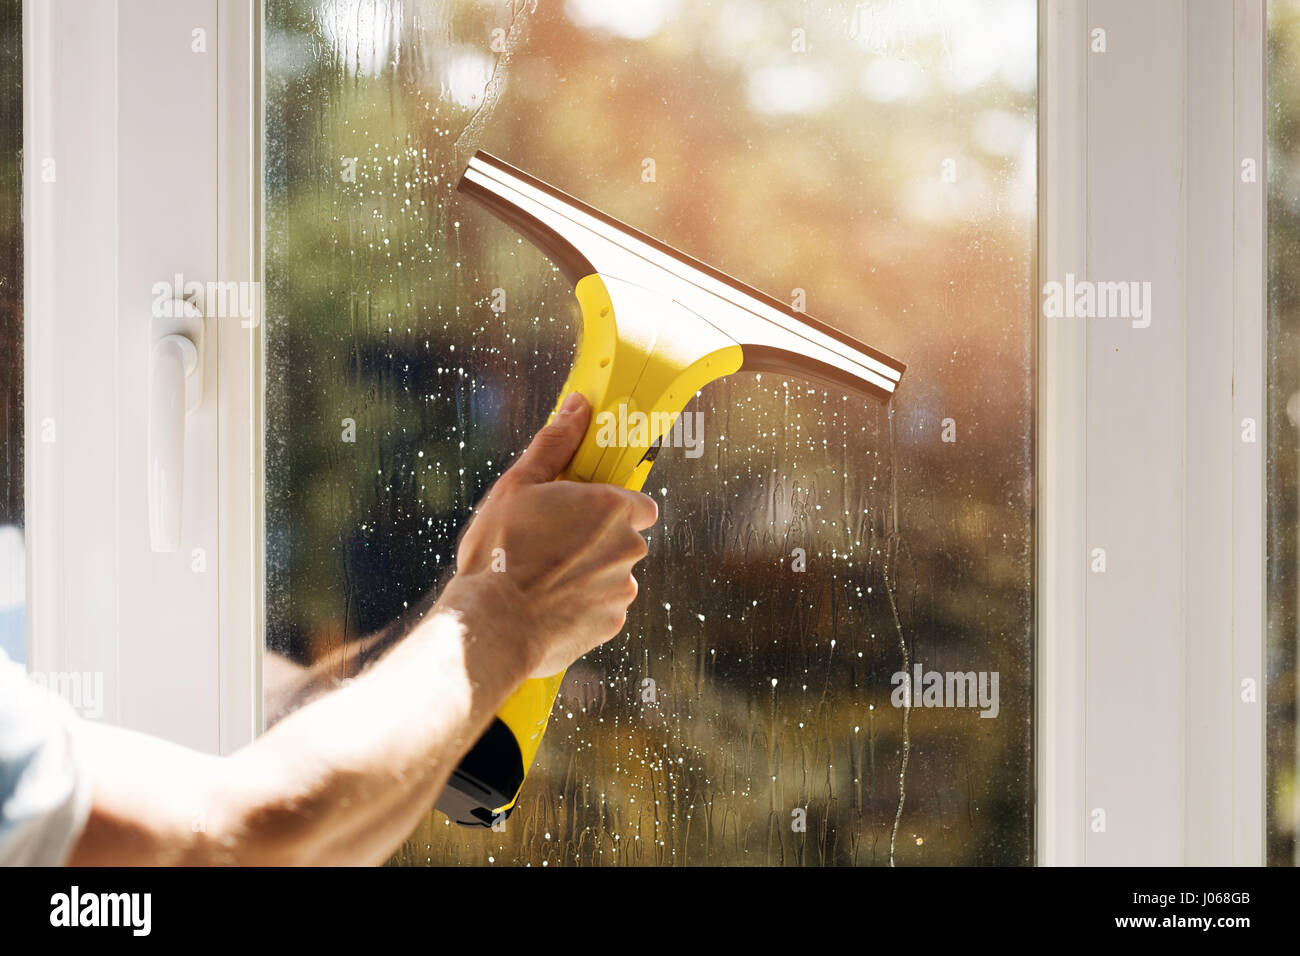 hand cleaning window with vacuum cleaner - Stock Image